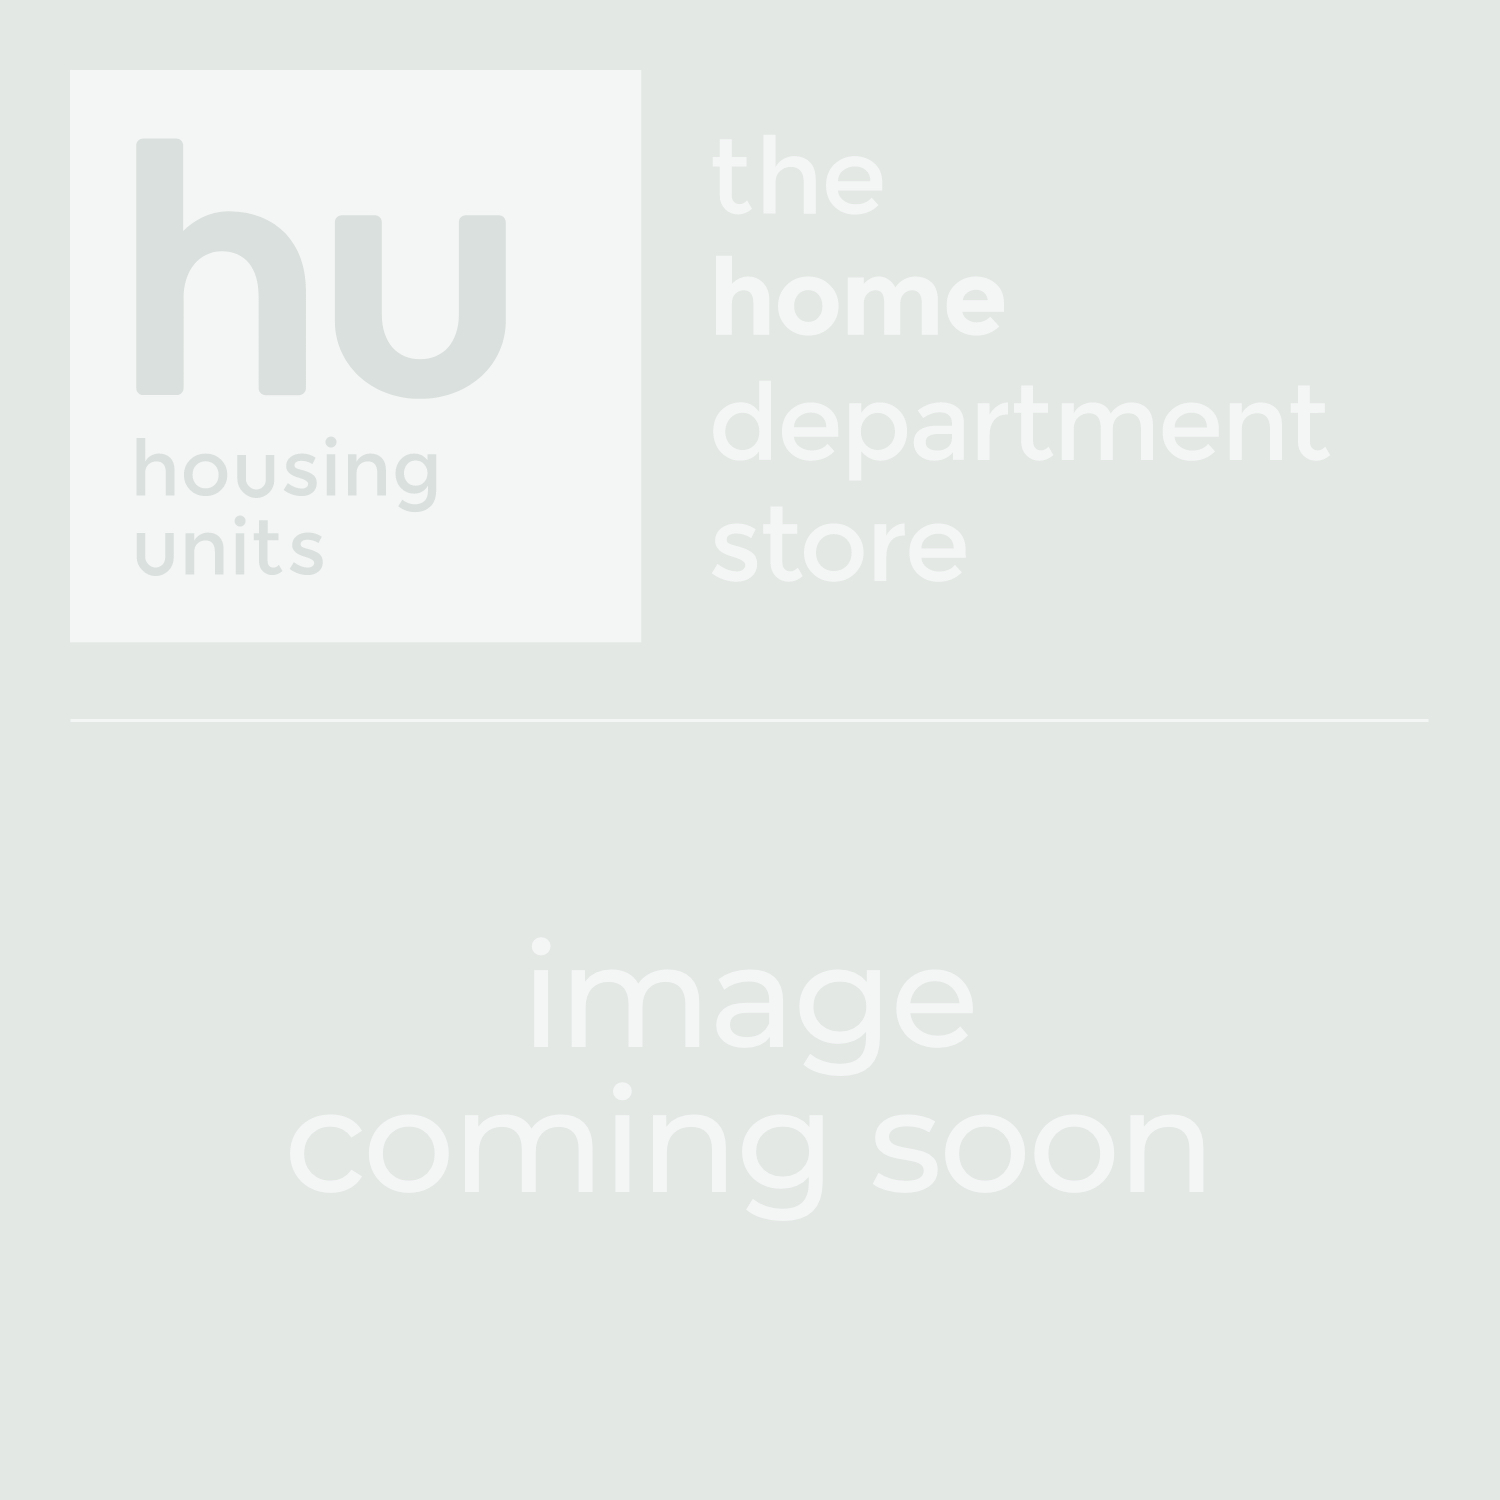 Stressless London Office Chair With Adjustable Headrest in Paloma Black & Chrome - Lifestyle   Housing Units